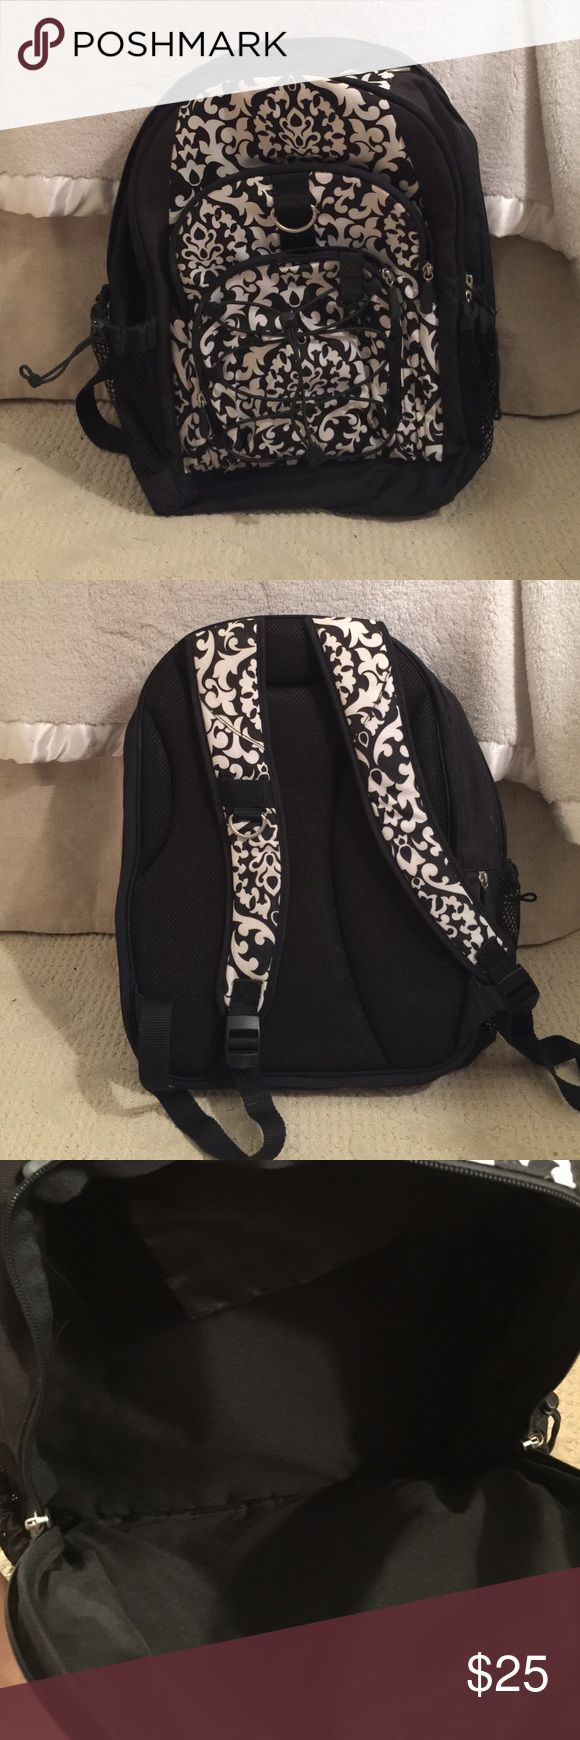 Black and white backpack Carried but in great condition, non smoking home Bags Backpacks